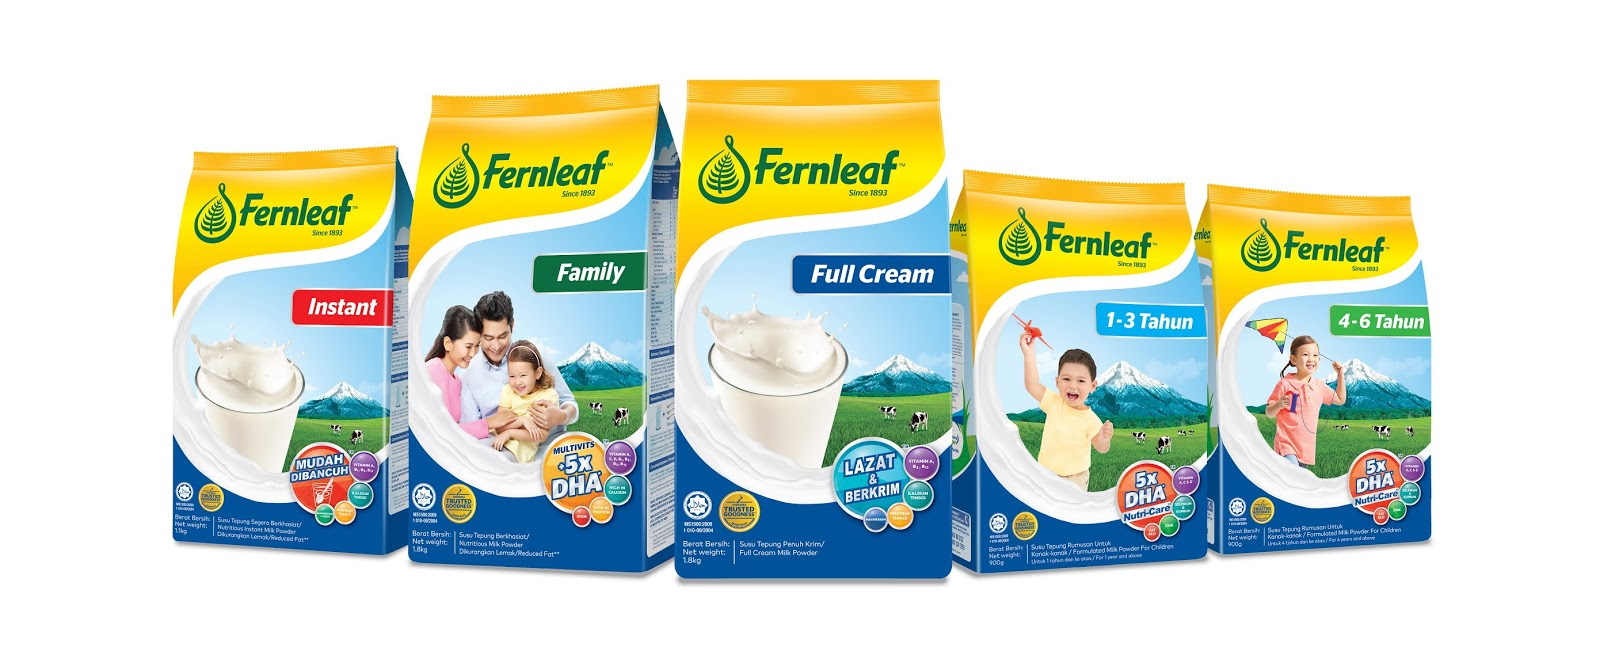 Fernleaf Records Strong Uplift In Sales Since Launch On Shopee Zulyusmar Com Malaysian Lifestyle Food Beverages Travel Technology And News